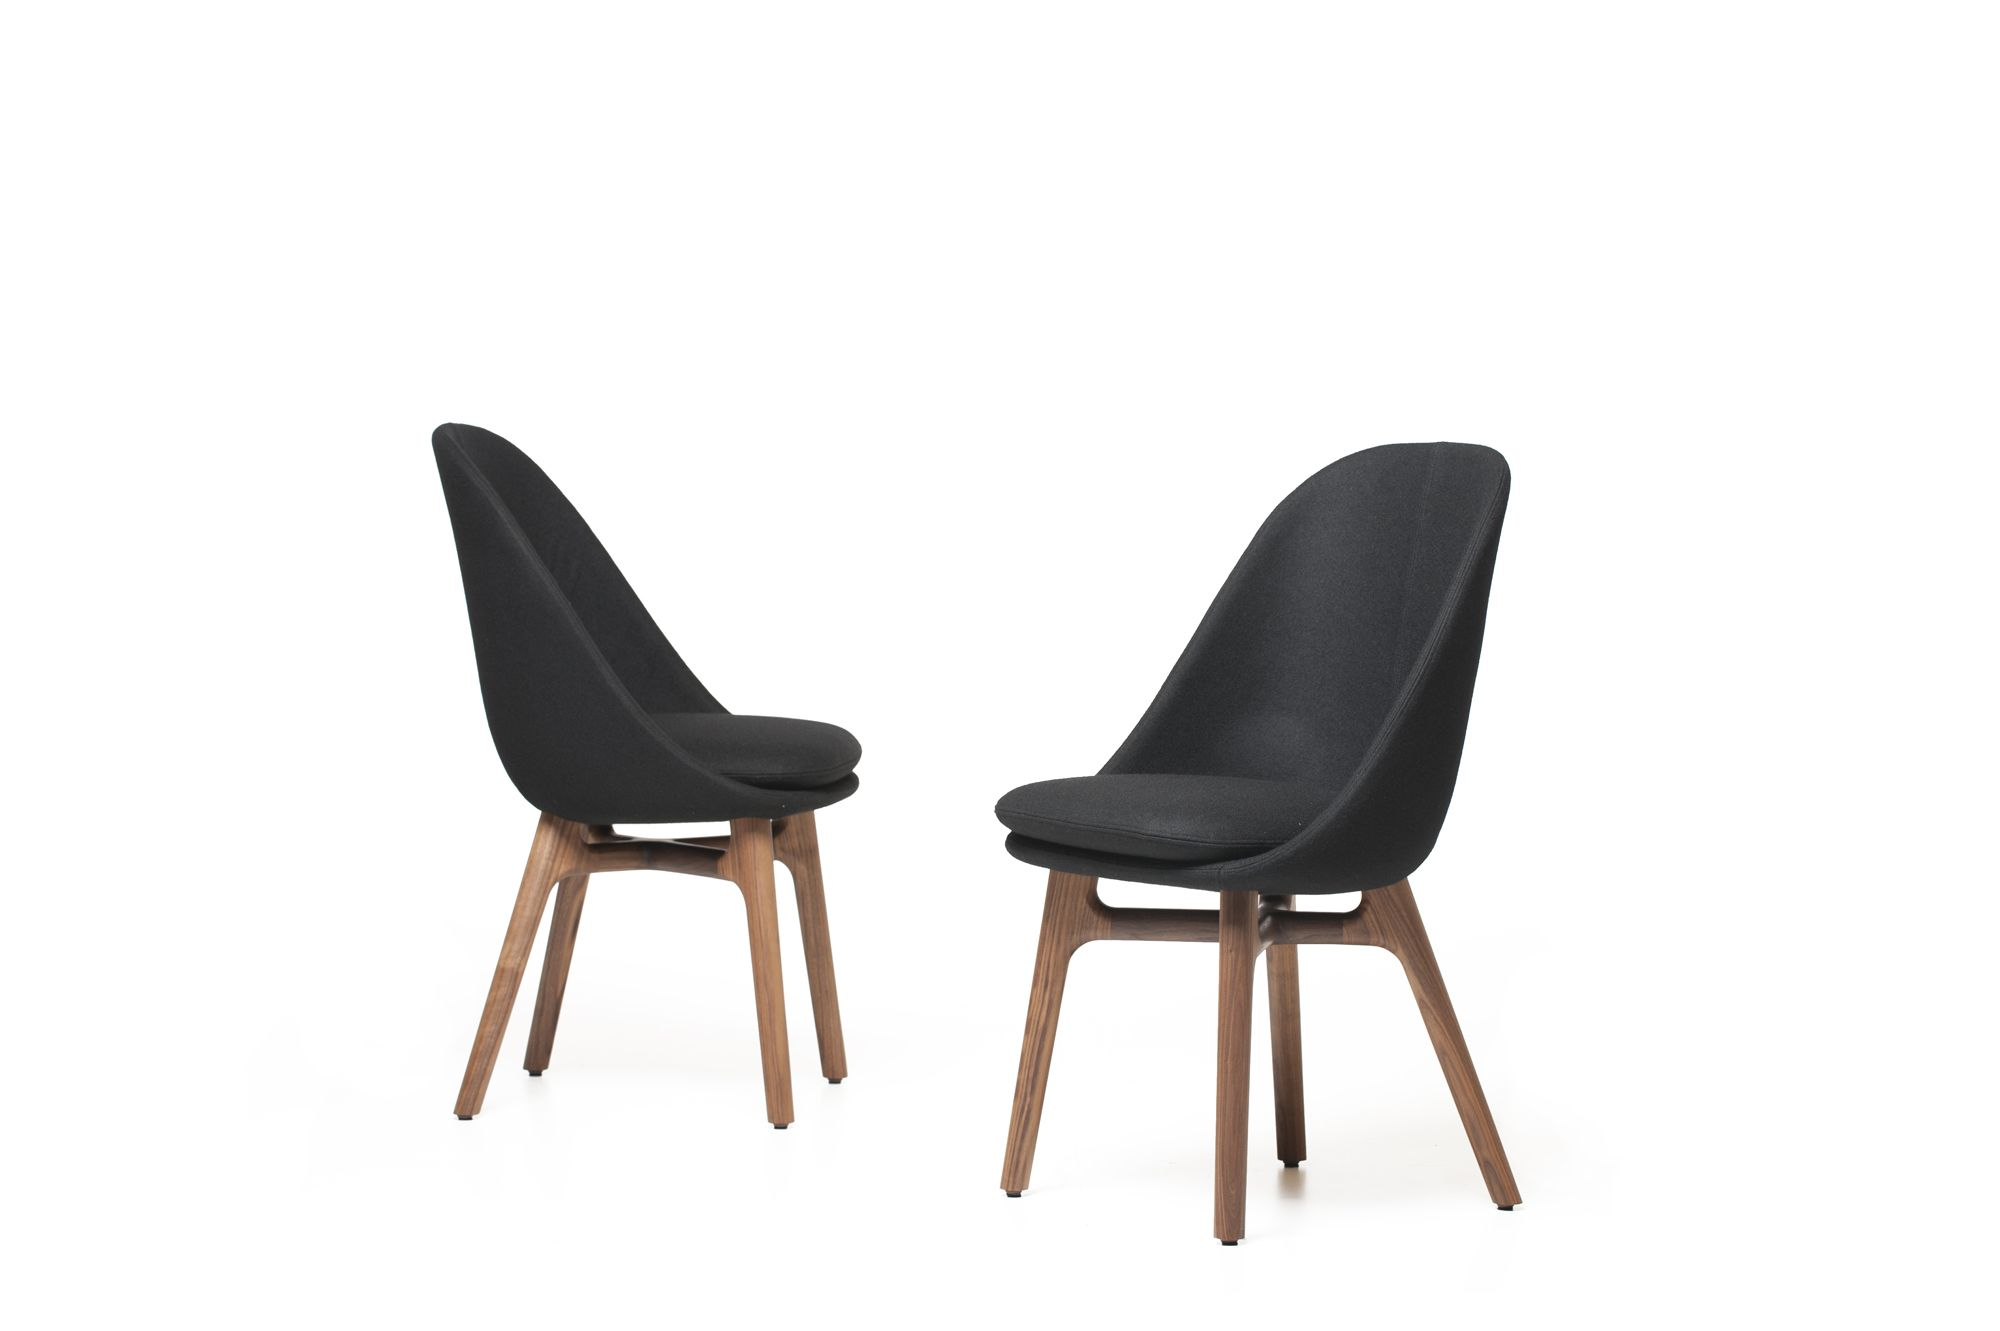 Modern Leather Dining Chairs Restaurant Stuhle Moderne Stuhle Und Moderne Esszimmerstuhle